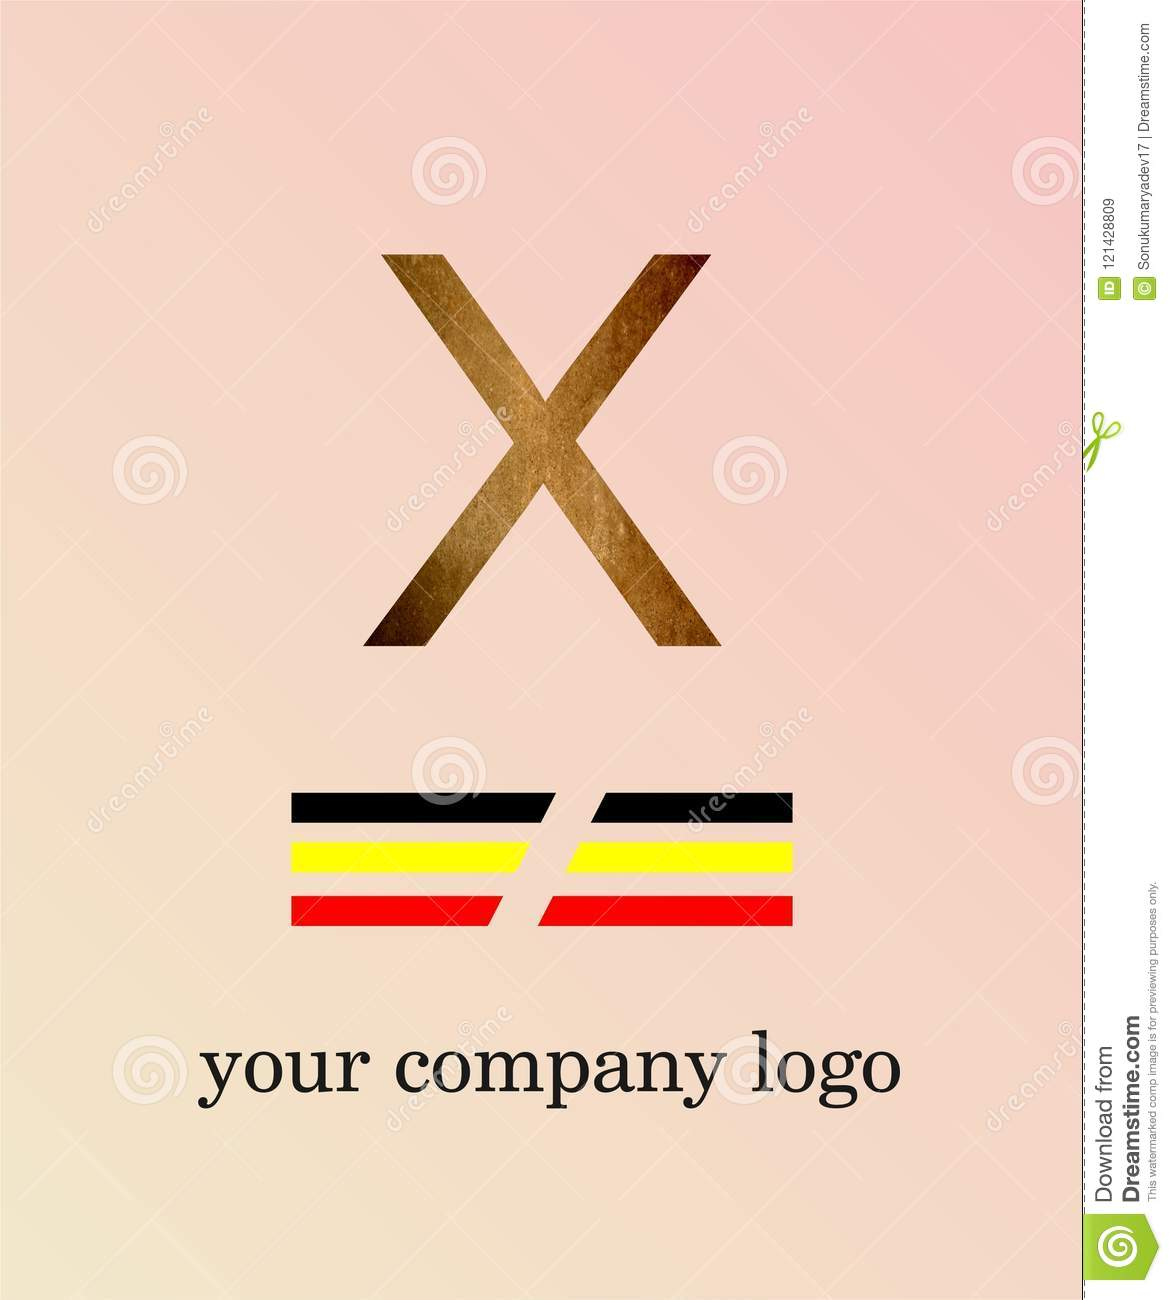 X Letter Logo With Texture Template You Company Logo And Light Pink ...